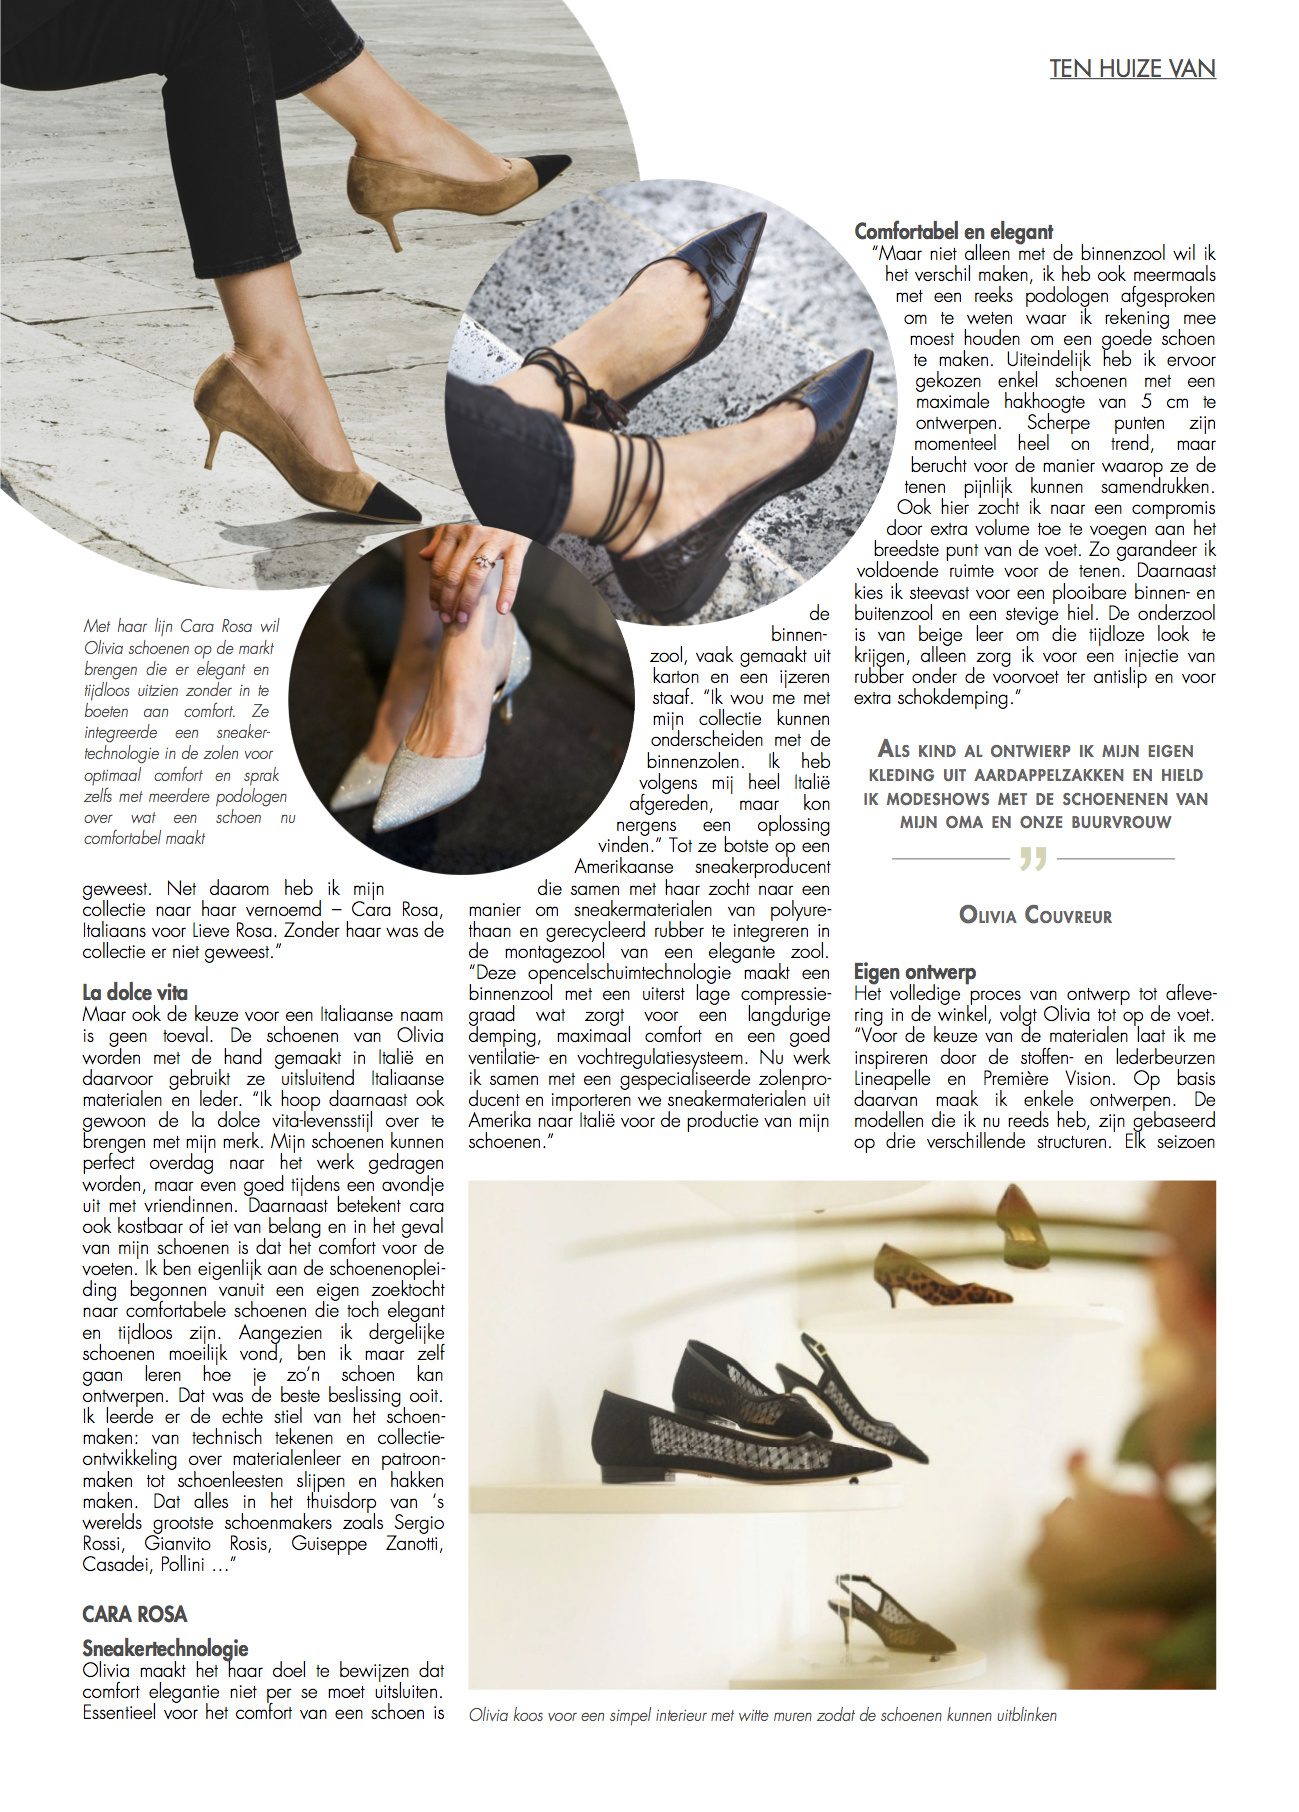 Cara Rosa in Shoes magazine - pmg